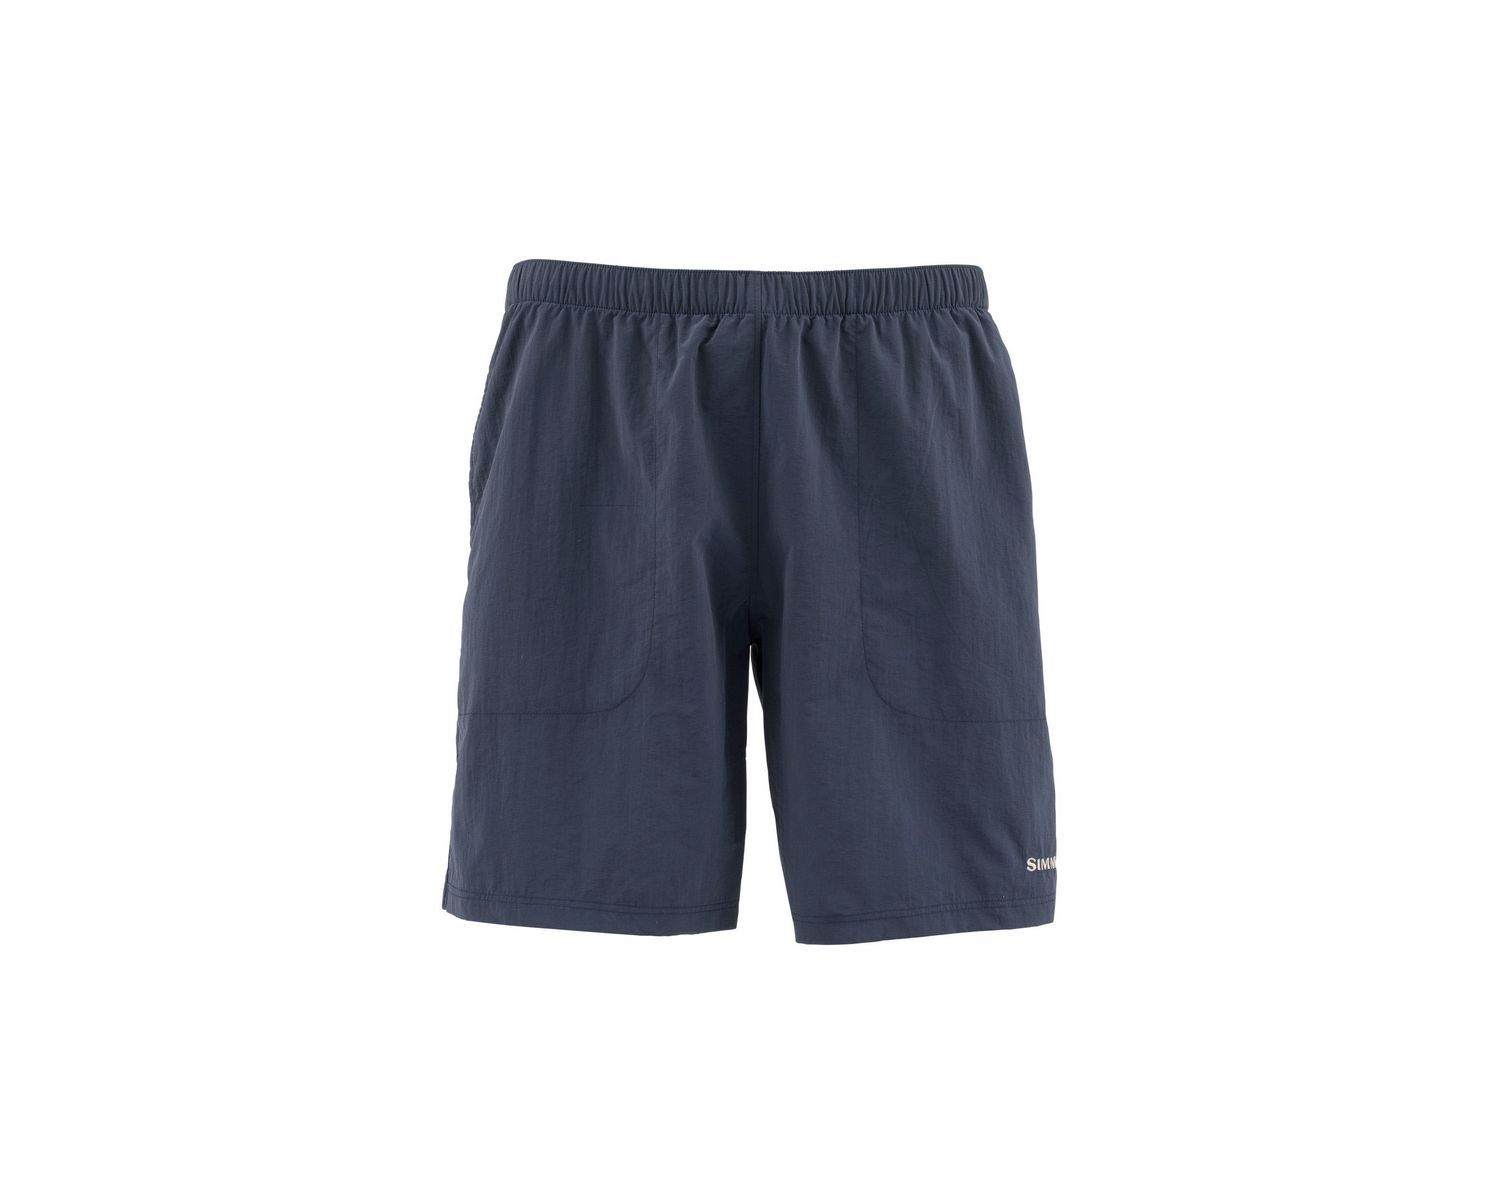 Simms Superlight Water Short